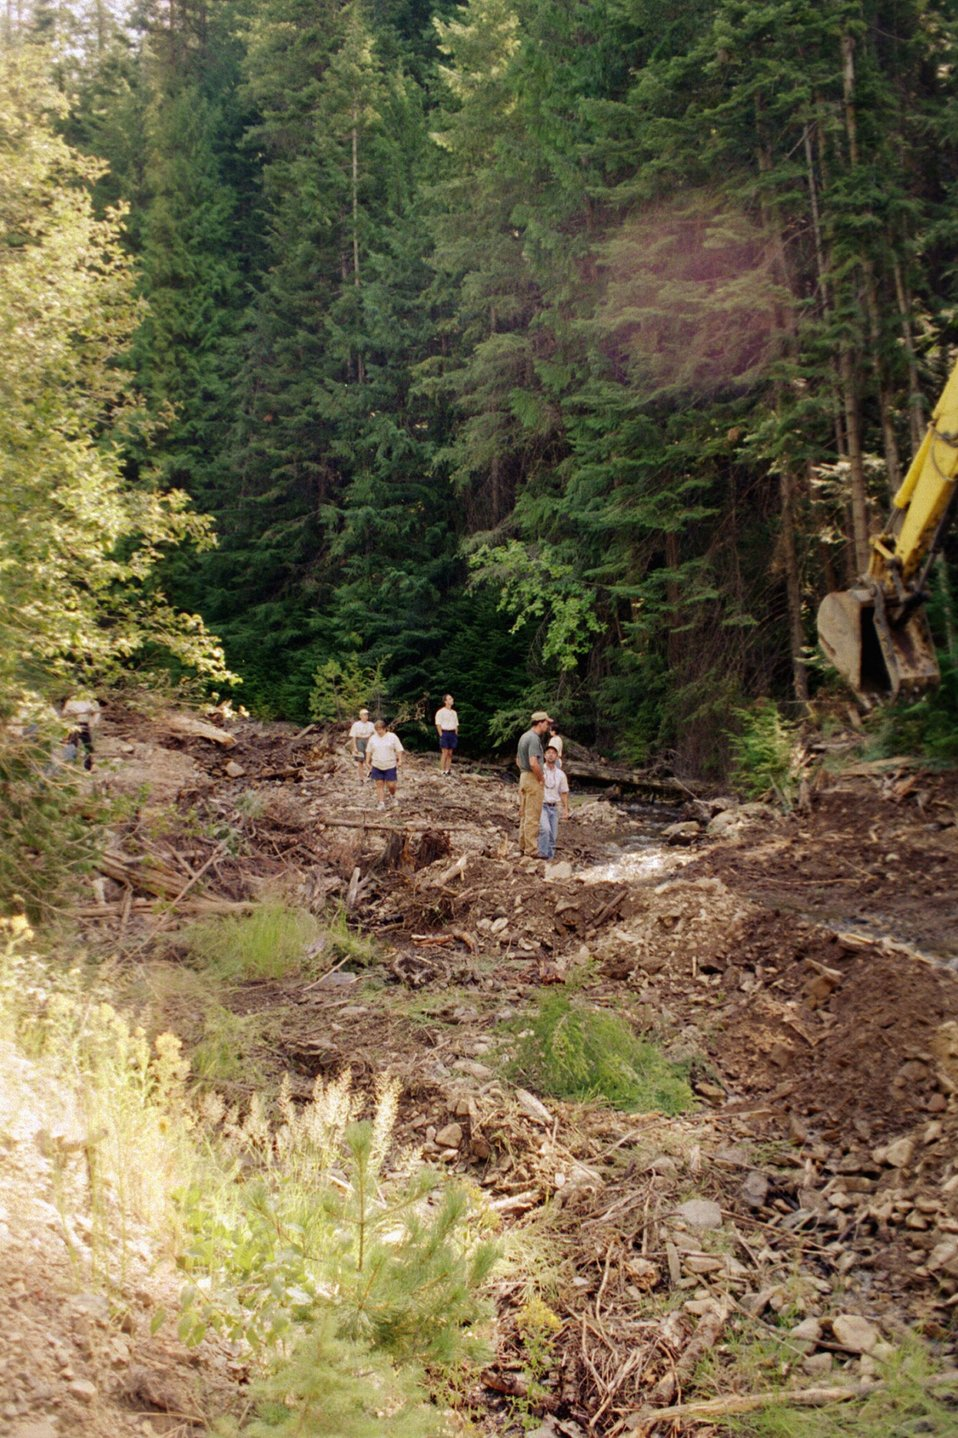 Riparian Area  Stream Restoration from mining damage  near Pinecreek  Couer D'Alene Field Office  UCSC  Upper Columbia Salmon Clearwater District